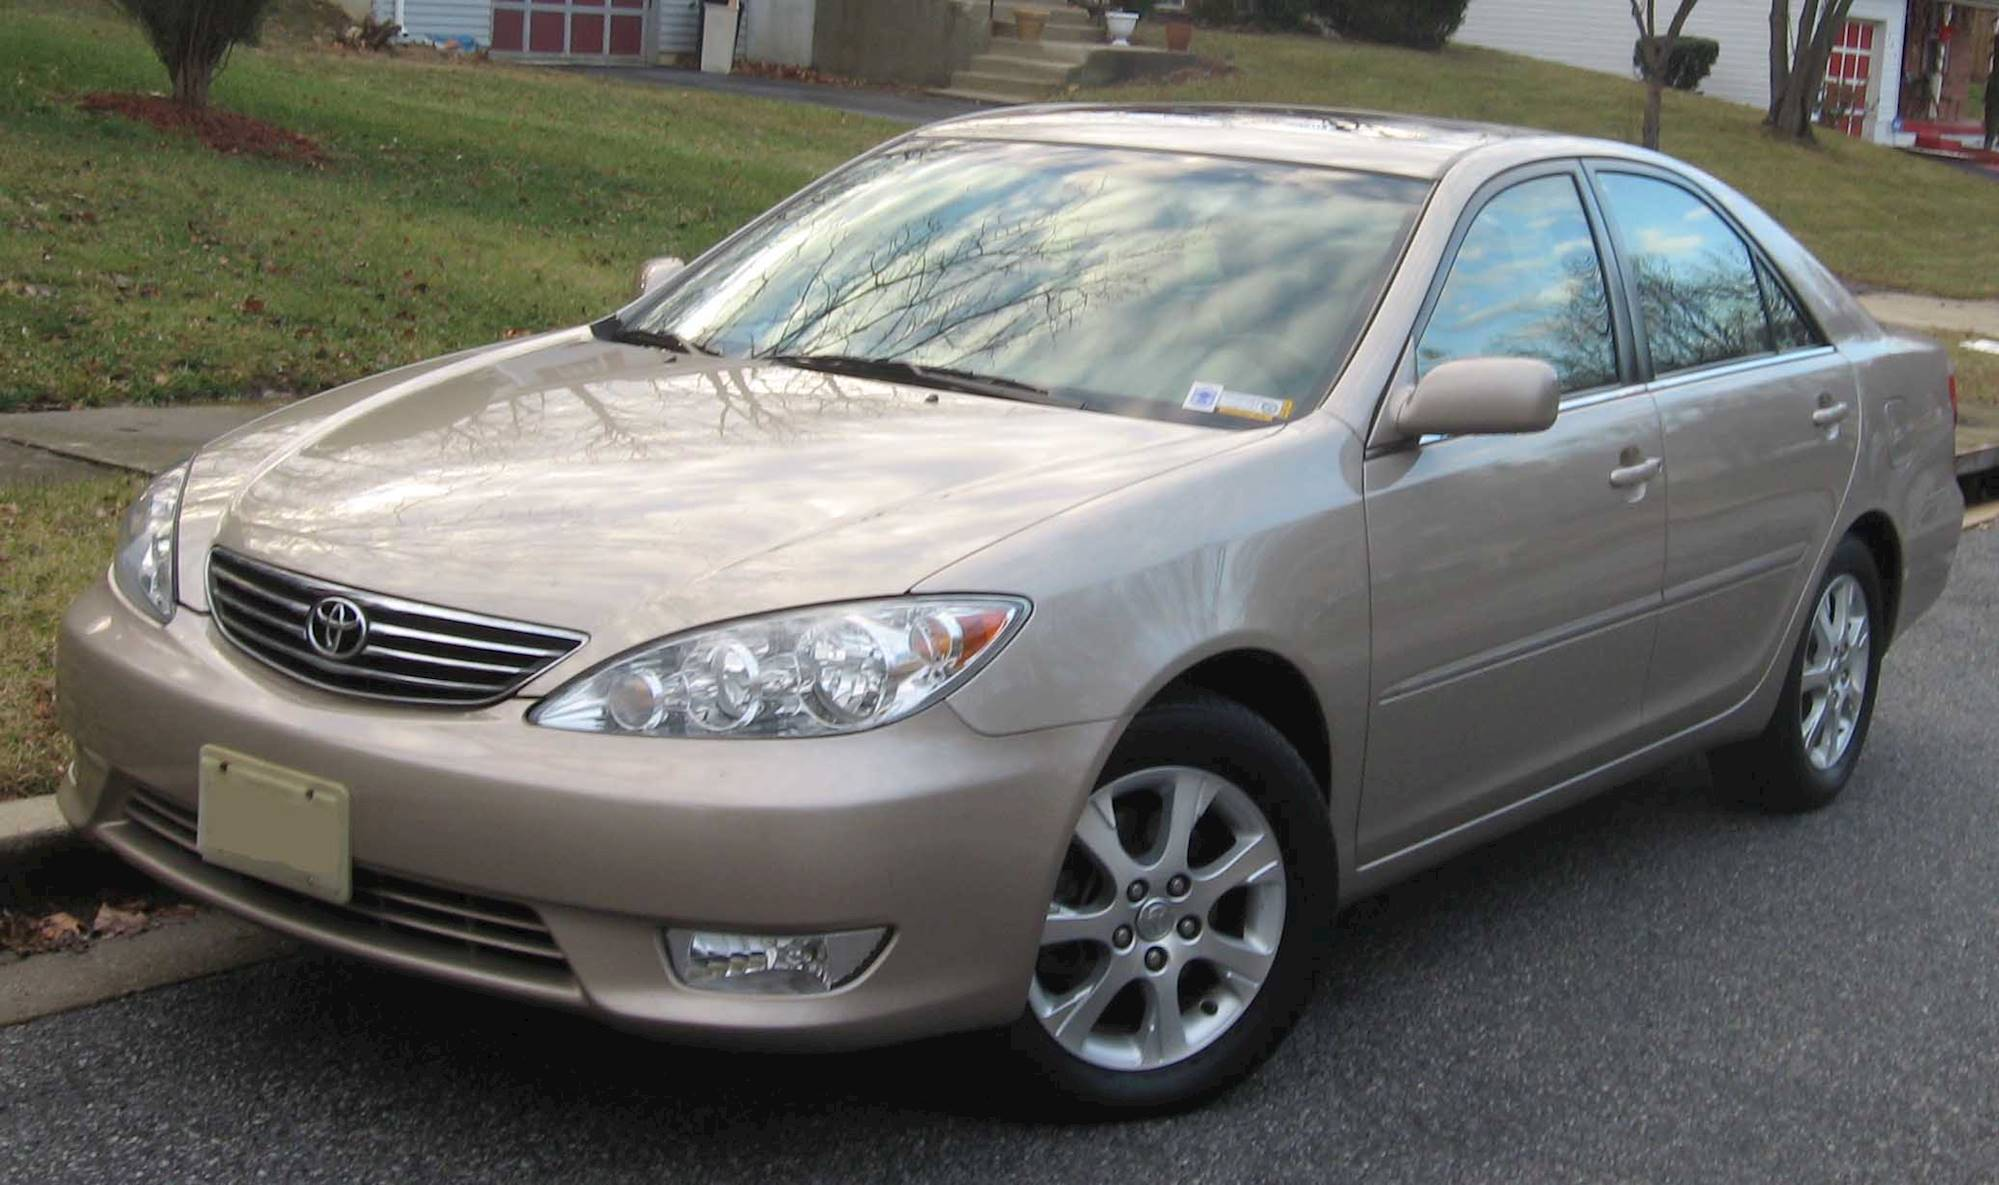 camry toyota 2005 xle rims le sedan models 2006 gen cars commons 2002 5th 4l manual file wikimedia 2007 2000